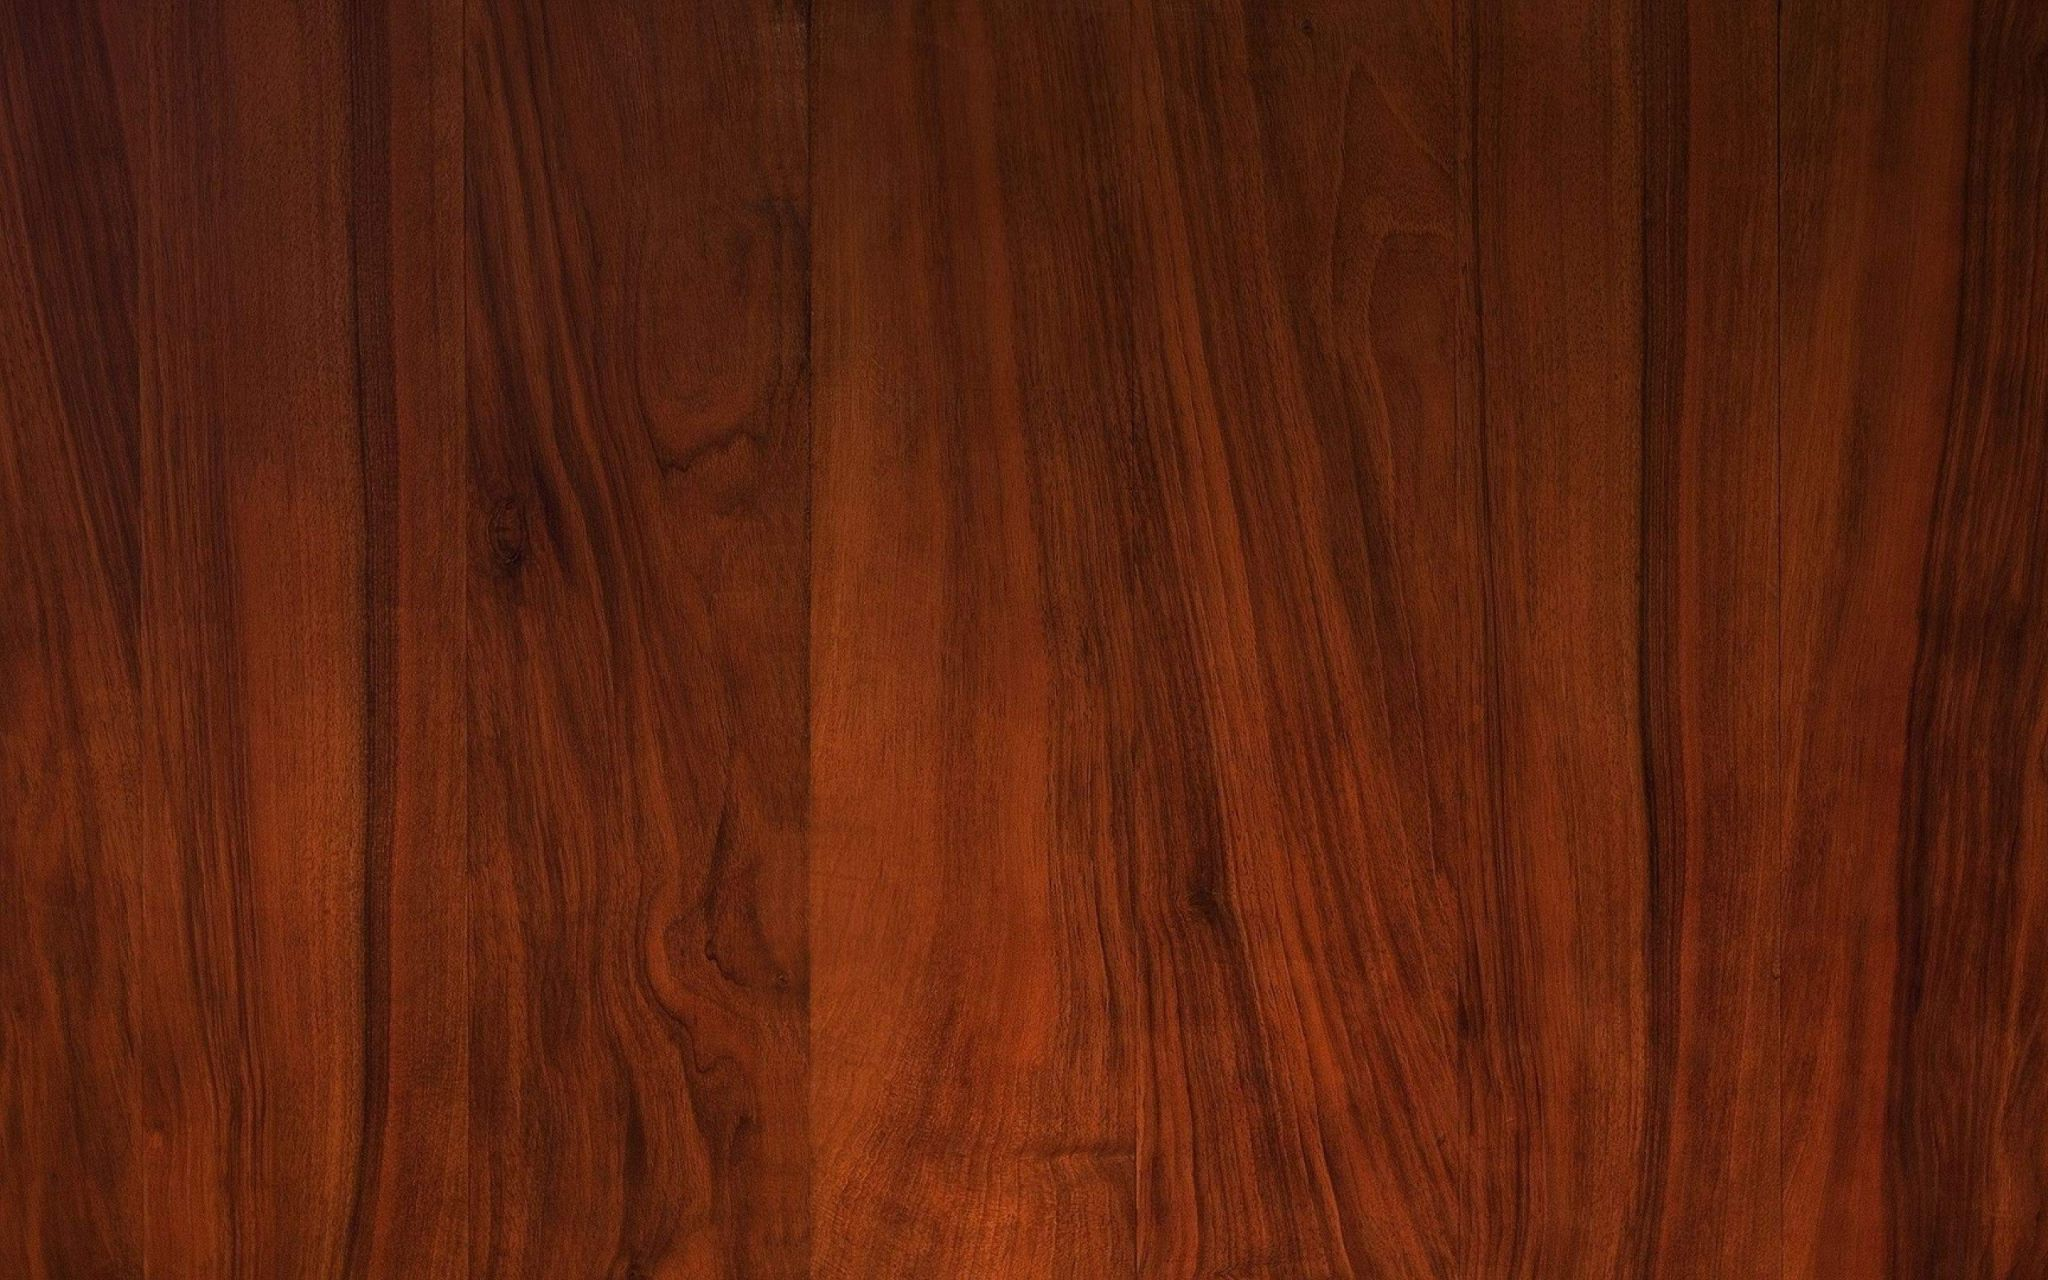 Wood Background Hd In 2019